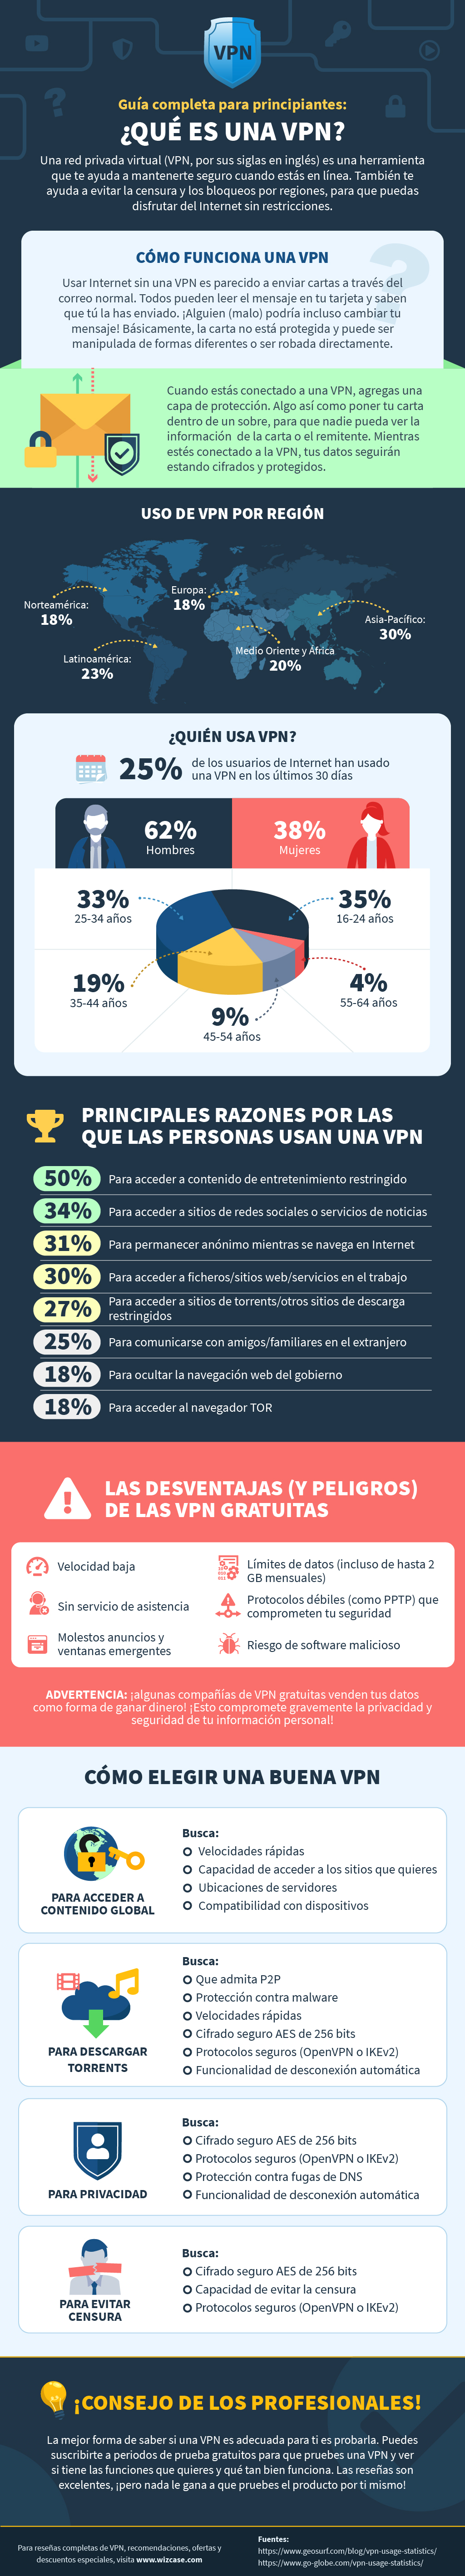 infographic guide to what is a VPN in Spanish